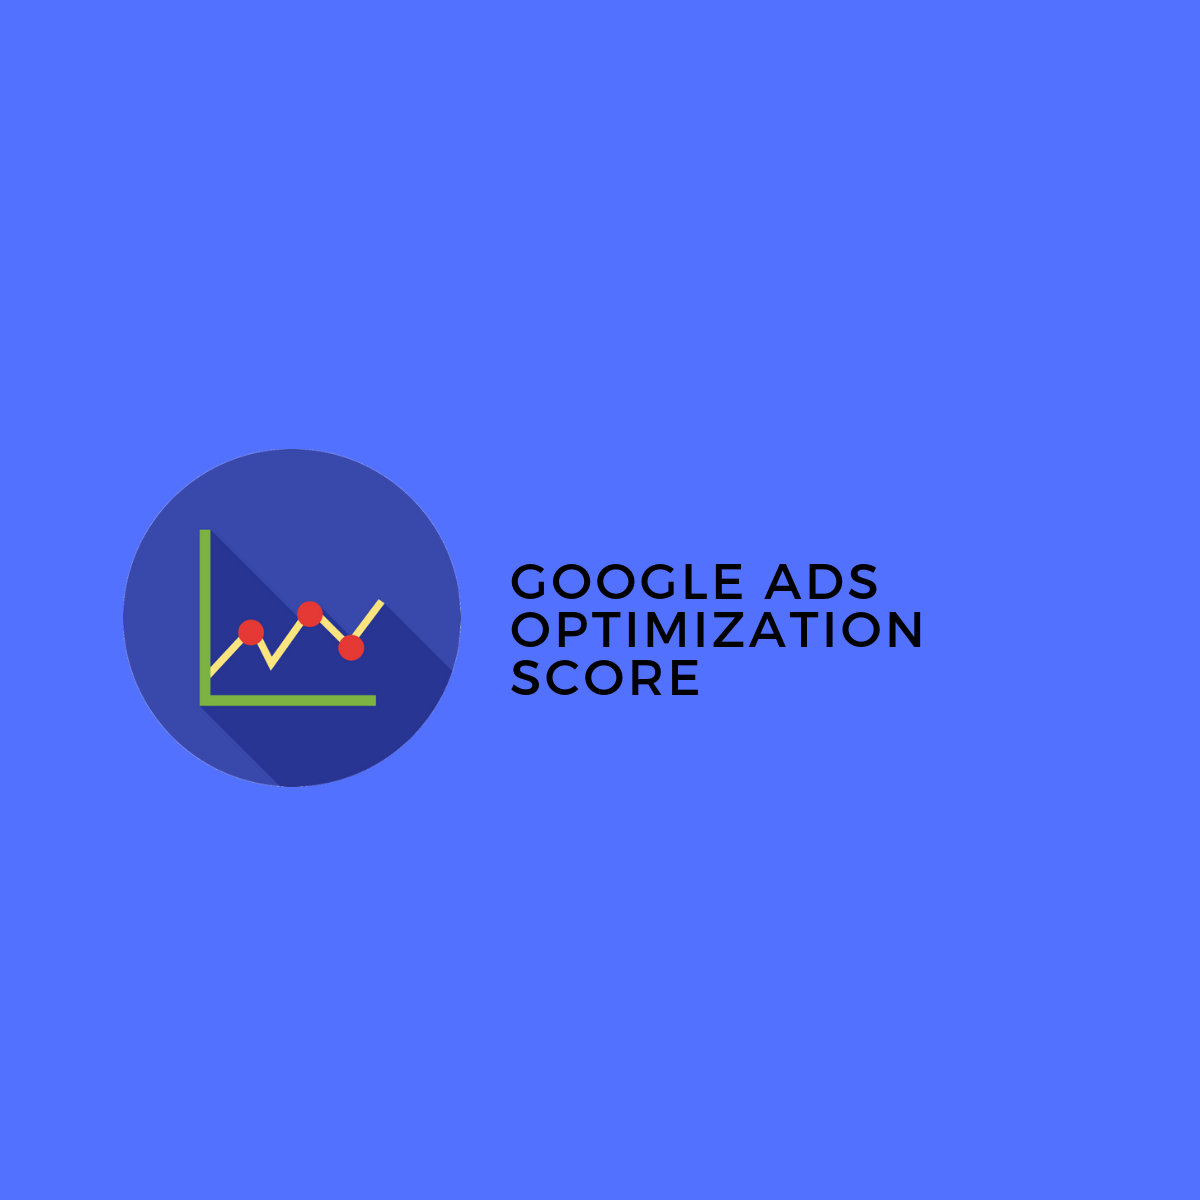 The Google Ads Optimization Score How To Use And Not Use This